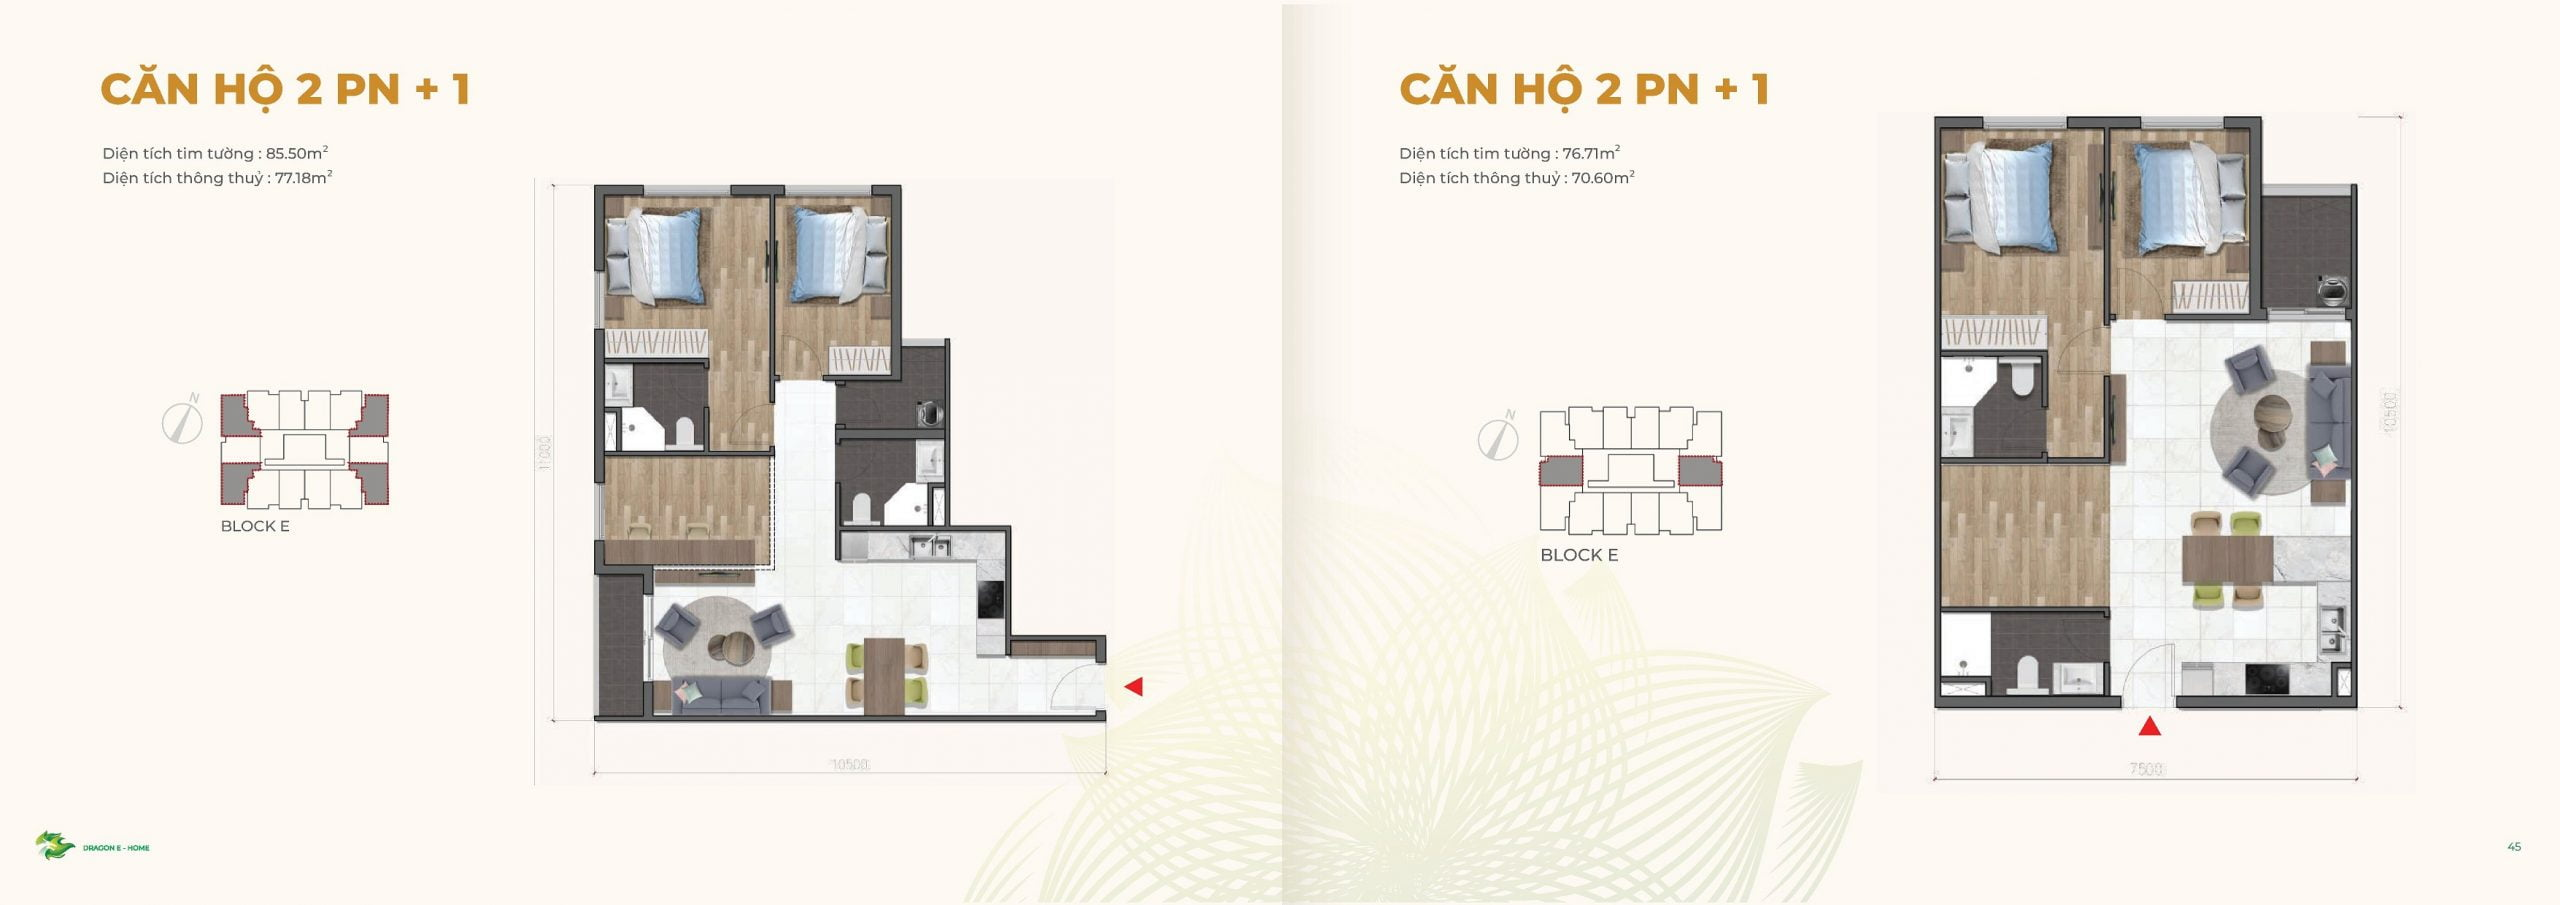 can ho 2PN +1 Dragon Ehome